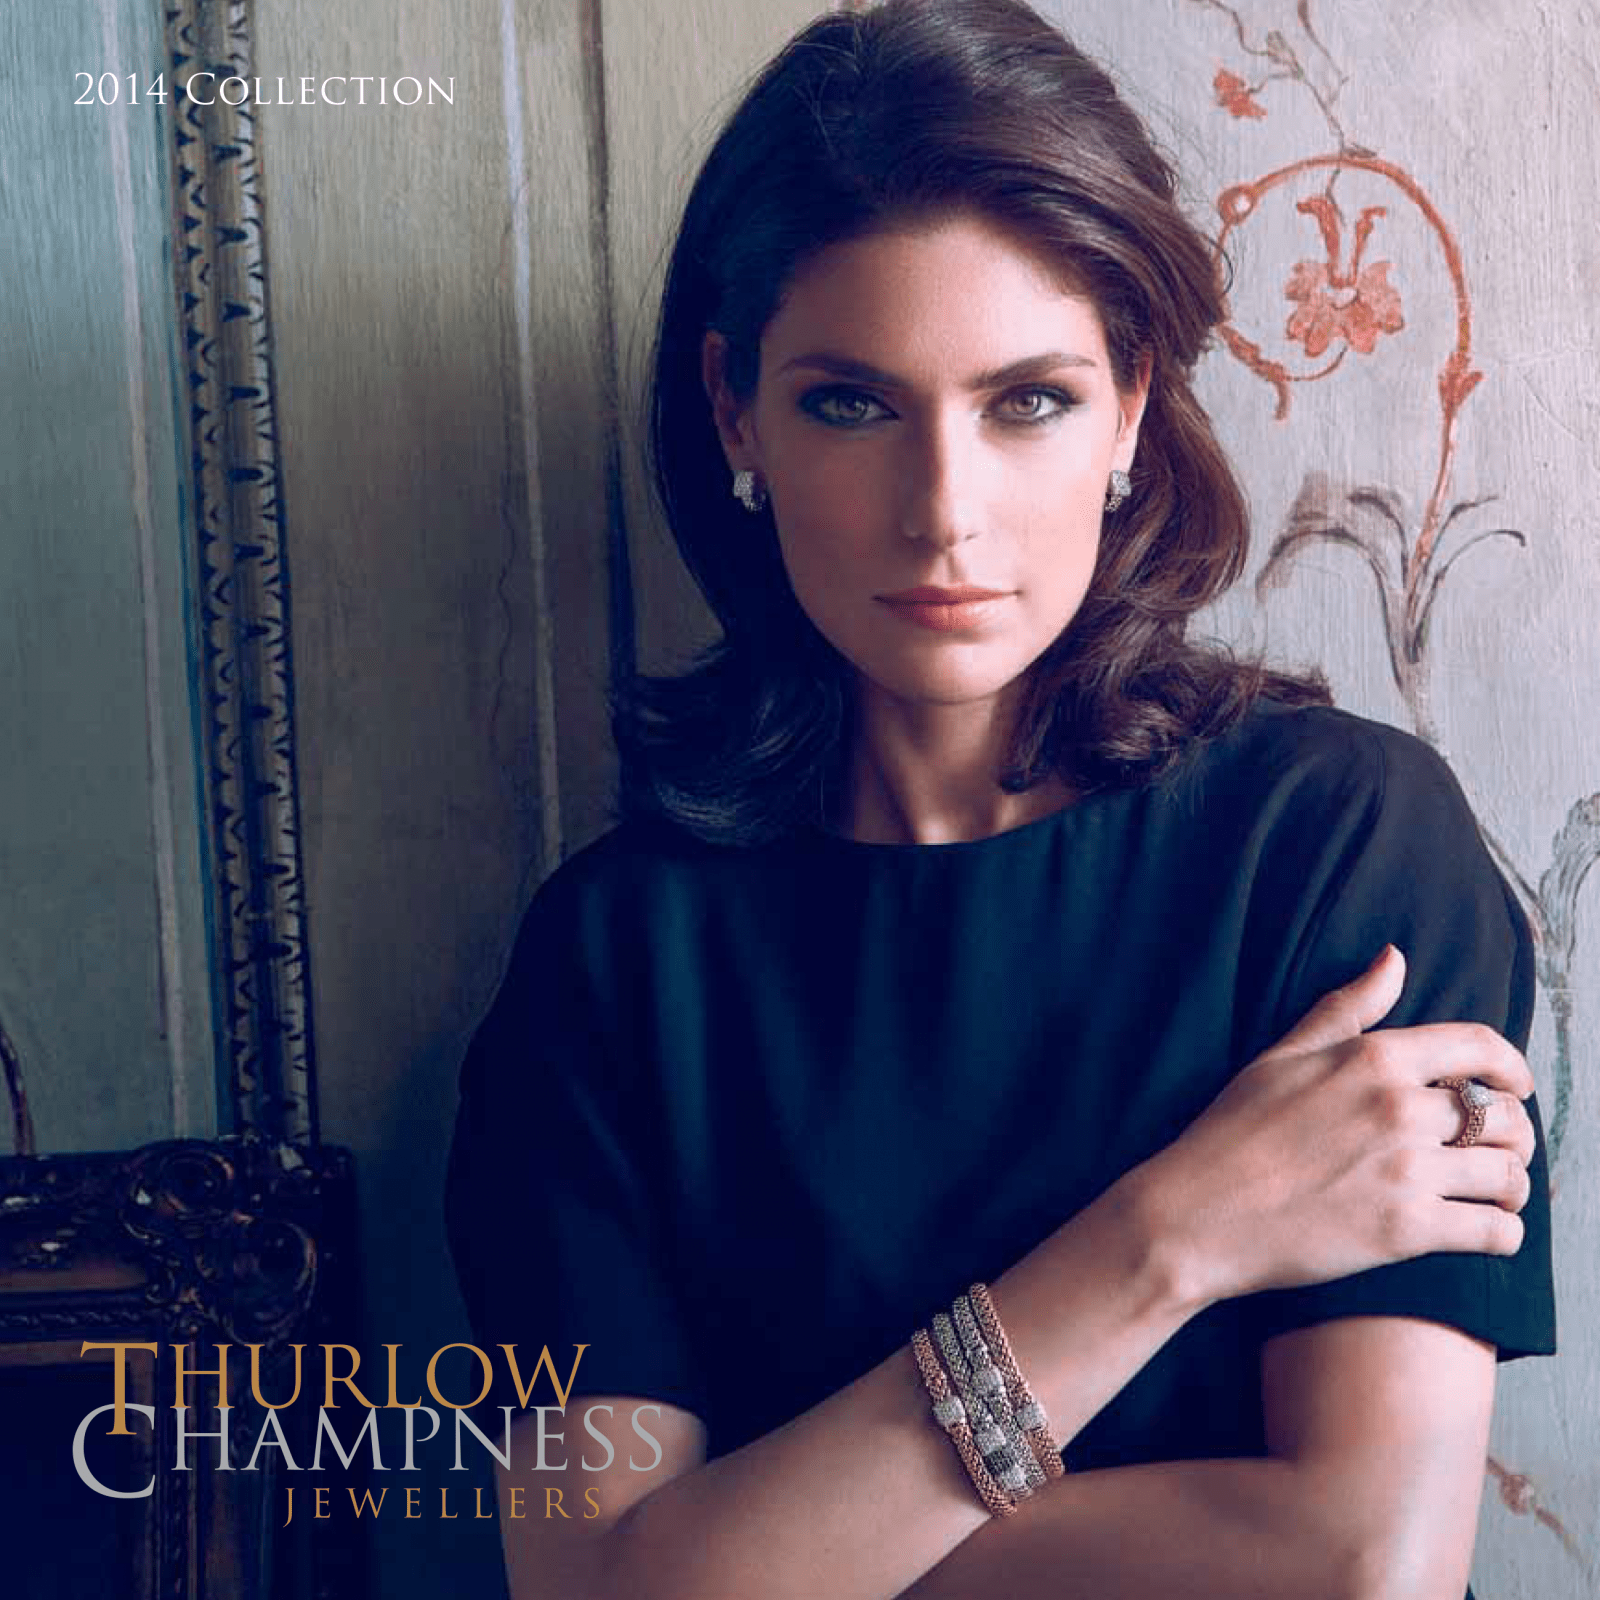 CATALOGUES – Thurlow Champness